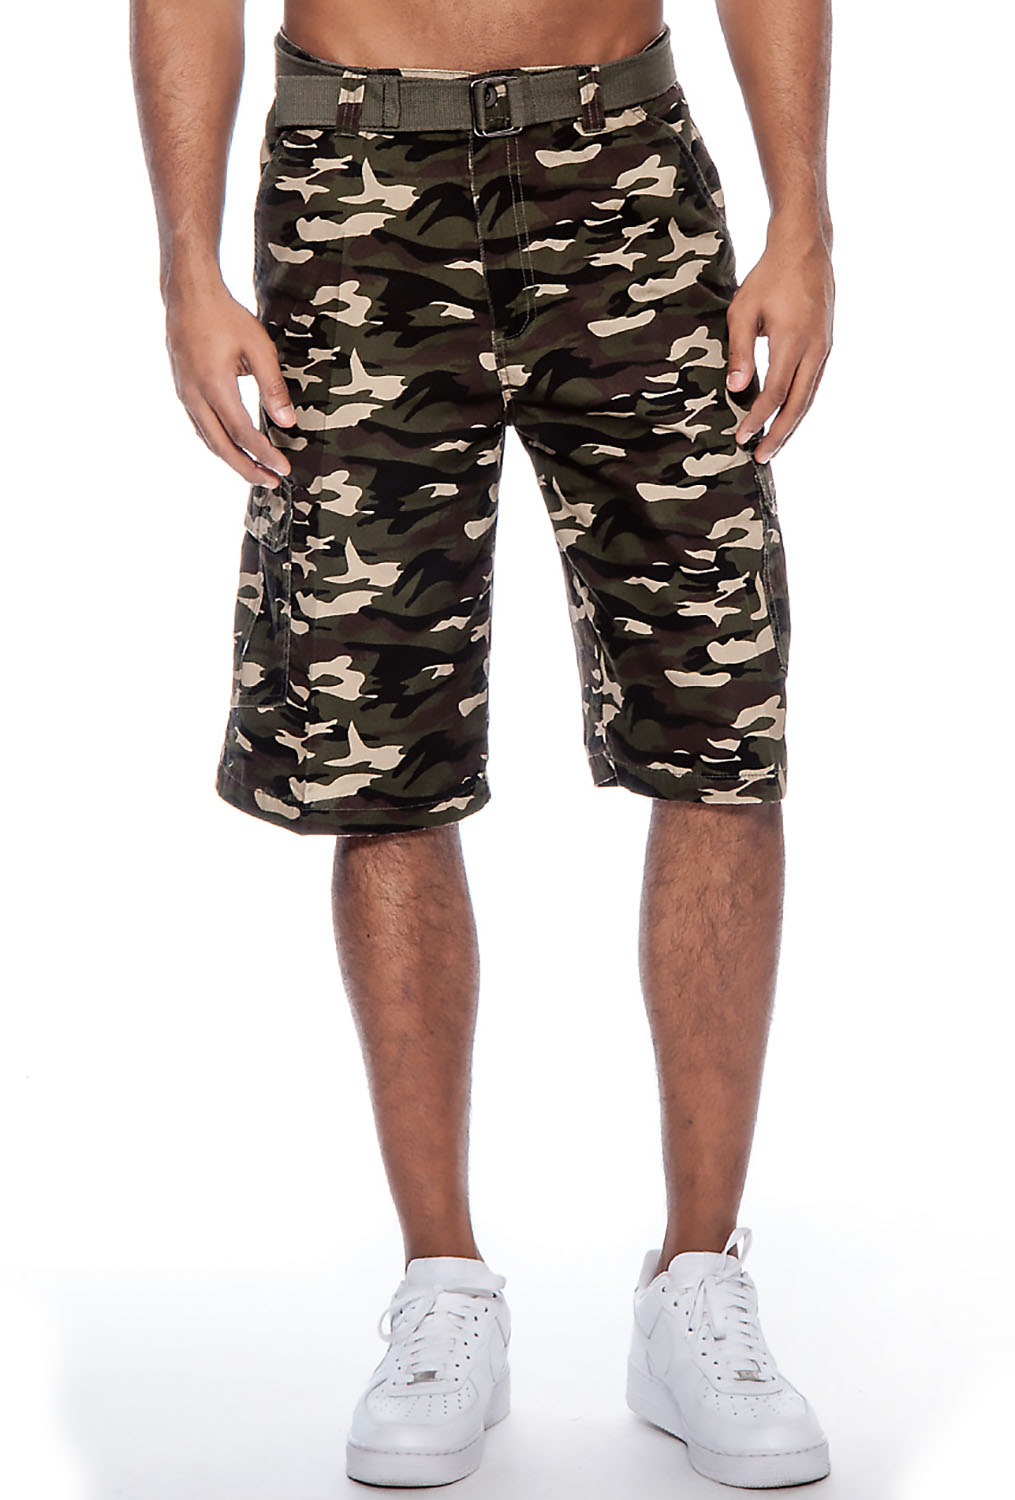 Camo Cargo Shorts. Create a casual and relaxed look, while still making a bold statement, by accenting a summertime wardrobe with a pair of camo cargo abpclan.gq flexible and relaxed design of cargo shorts allows the freedom to engage in favorite outdoor activities or lounge in the sun in comfort.